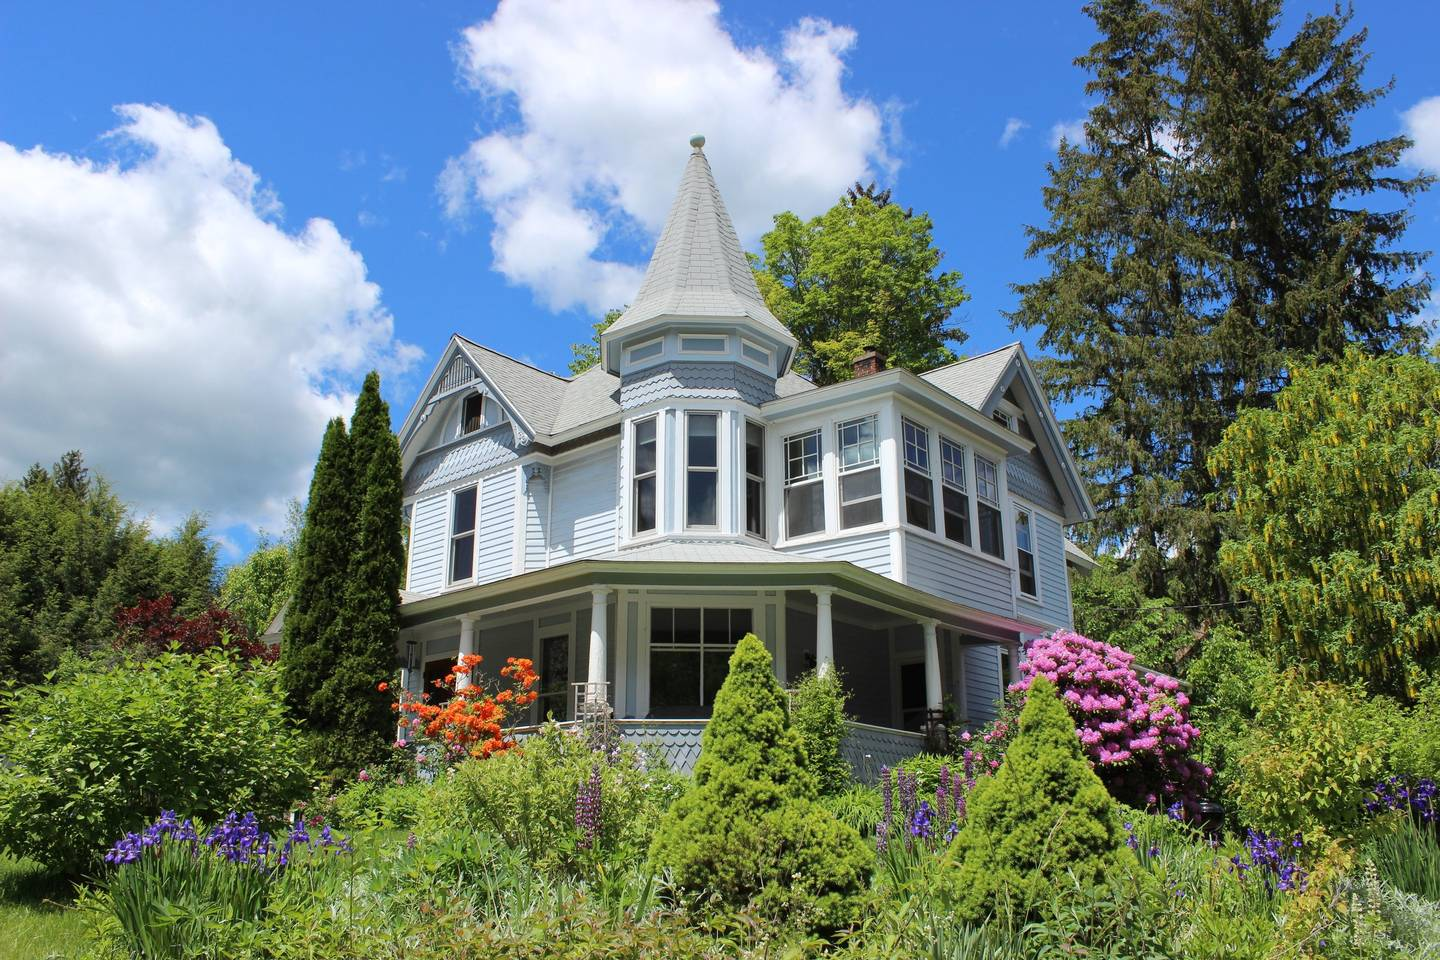 One of our bed and breakfasts in Margaretville, NY.